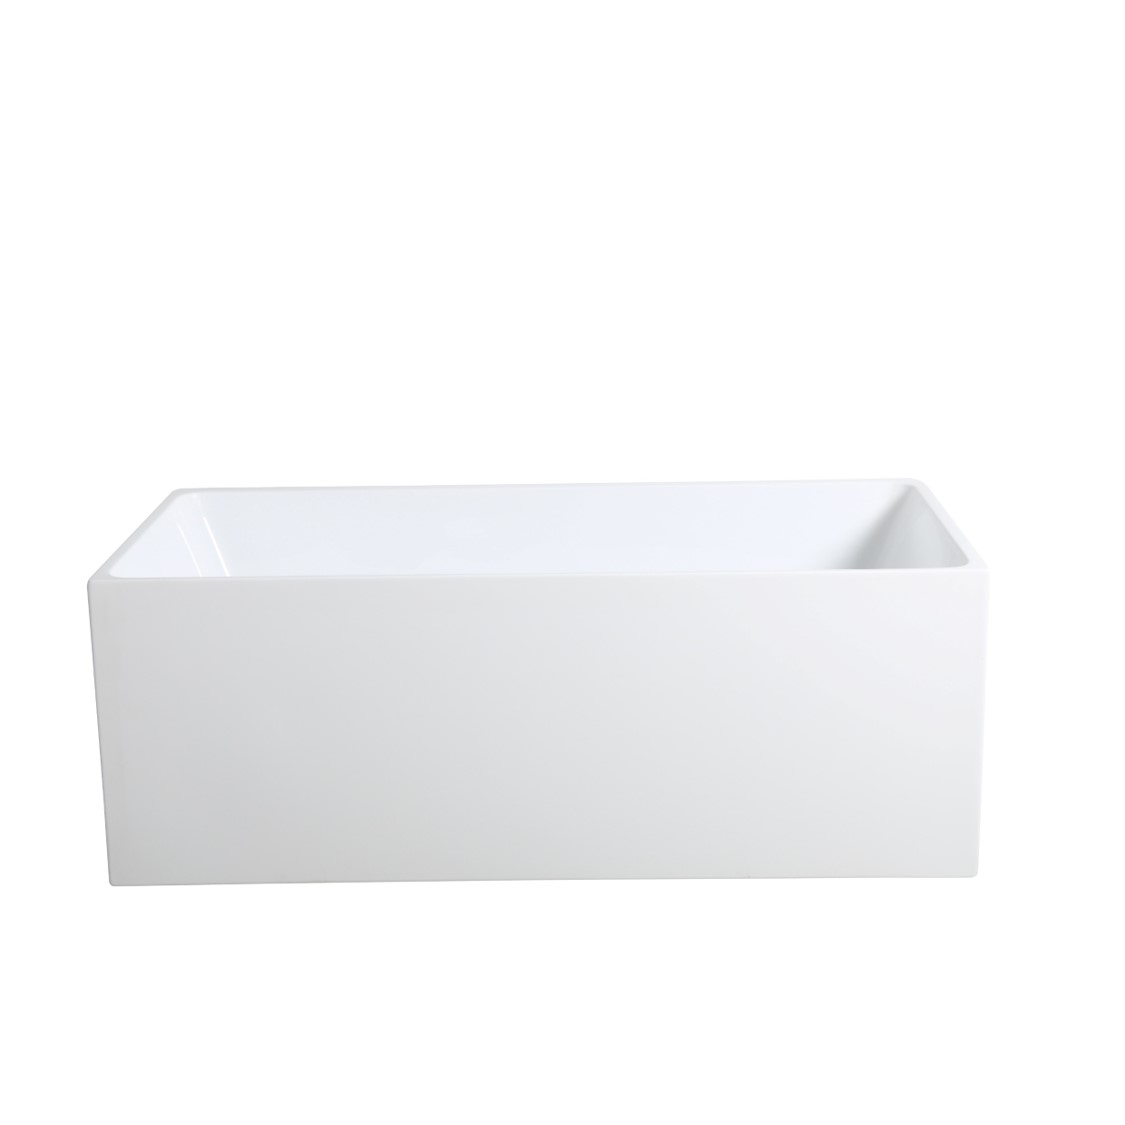 Theo 1400 Multi-Fit Freestanding Bathtub